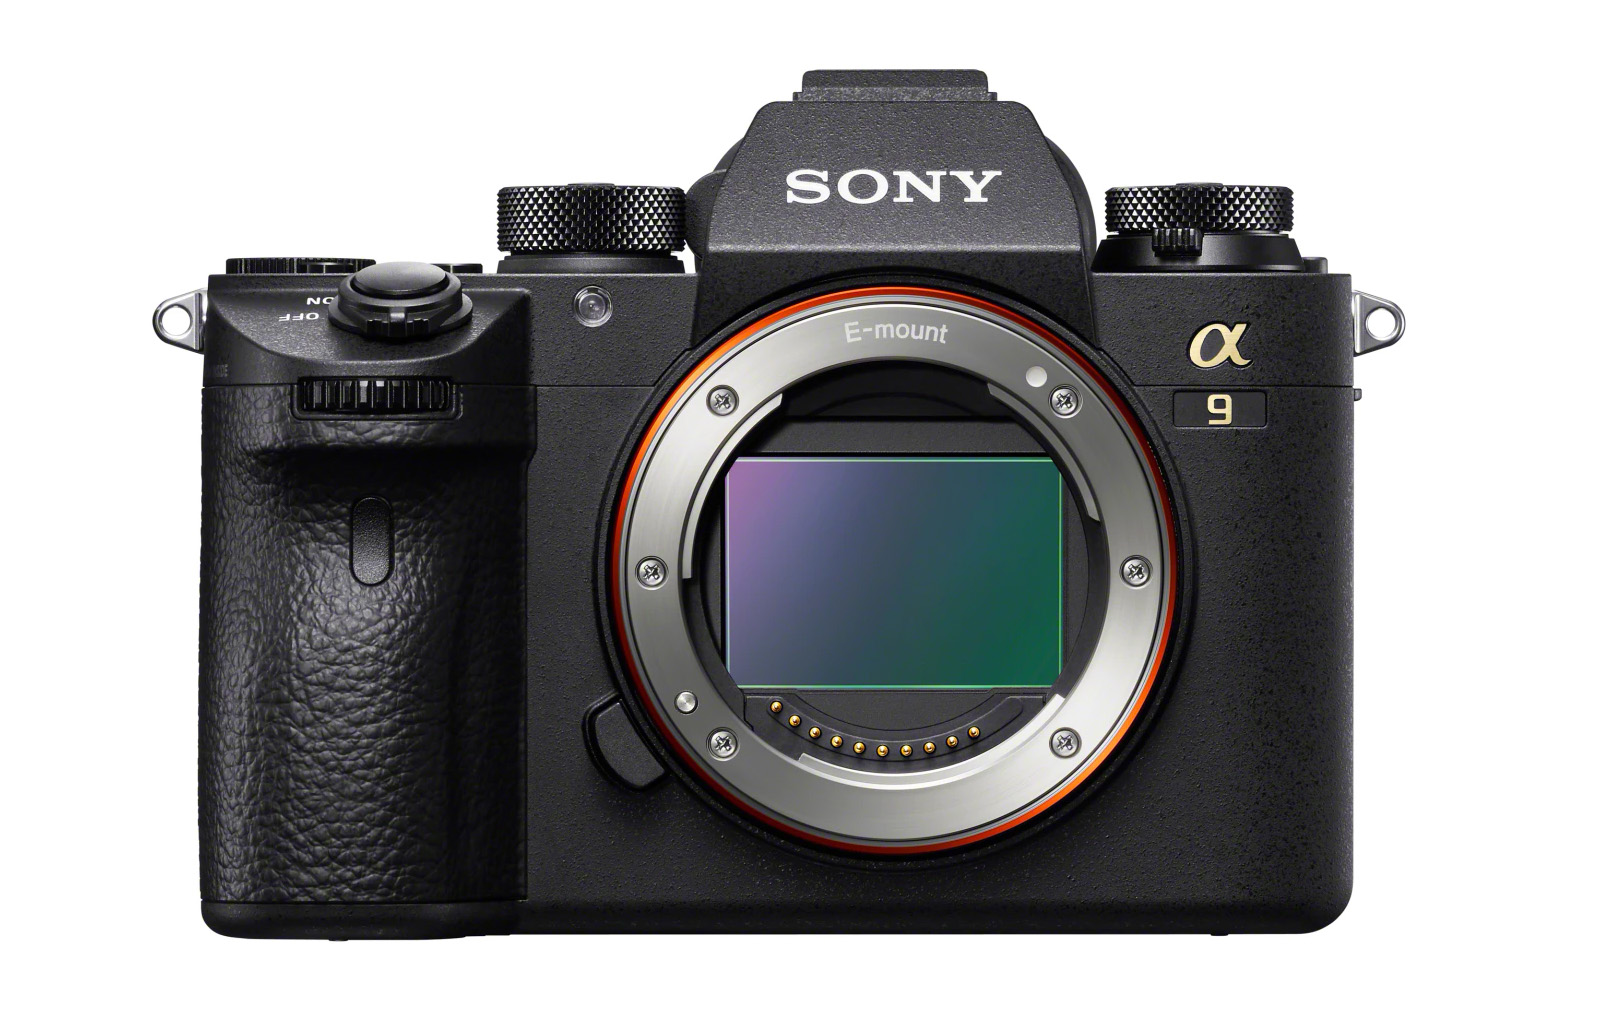 Sony\'s A9 is a powerhouse full-frame flagship camera